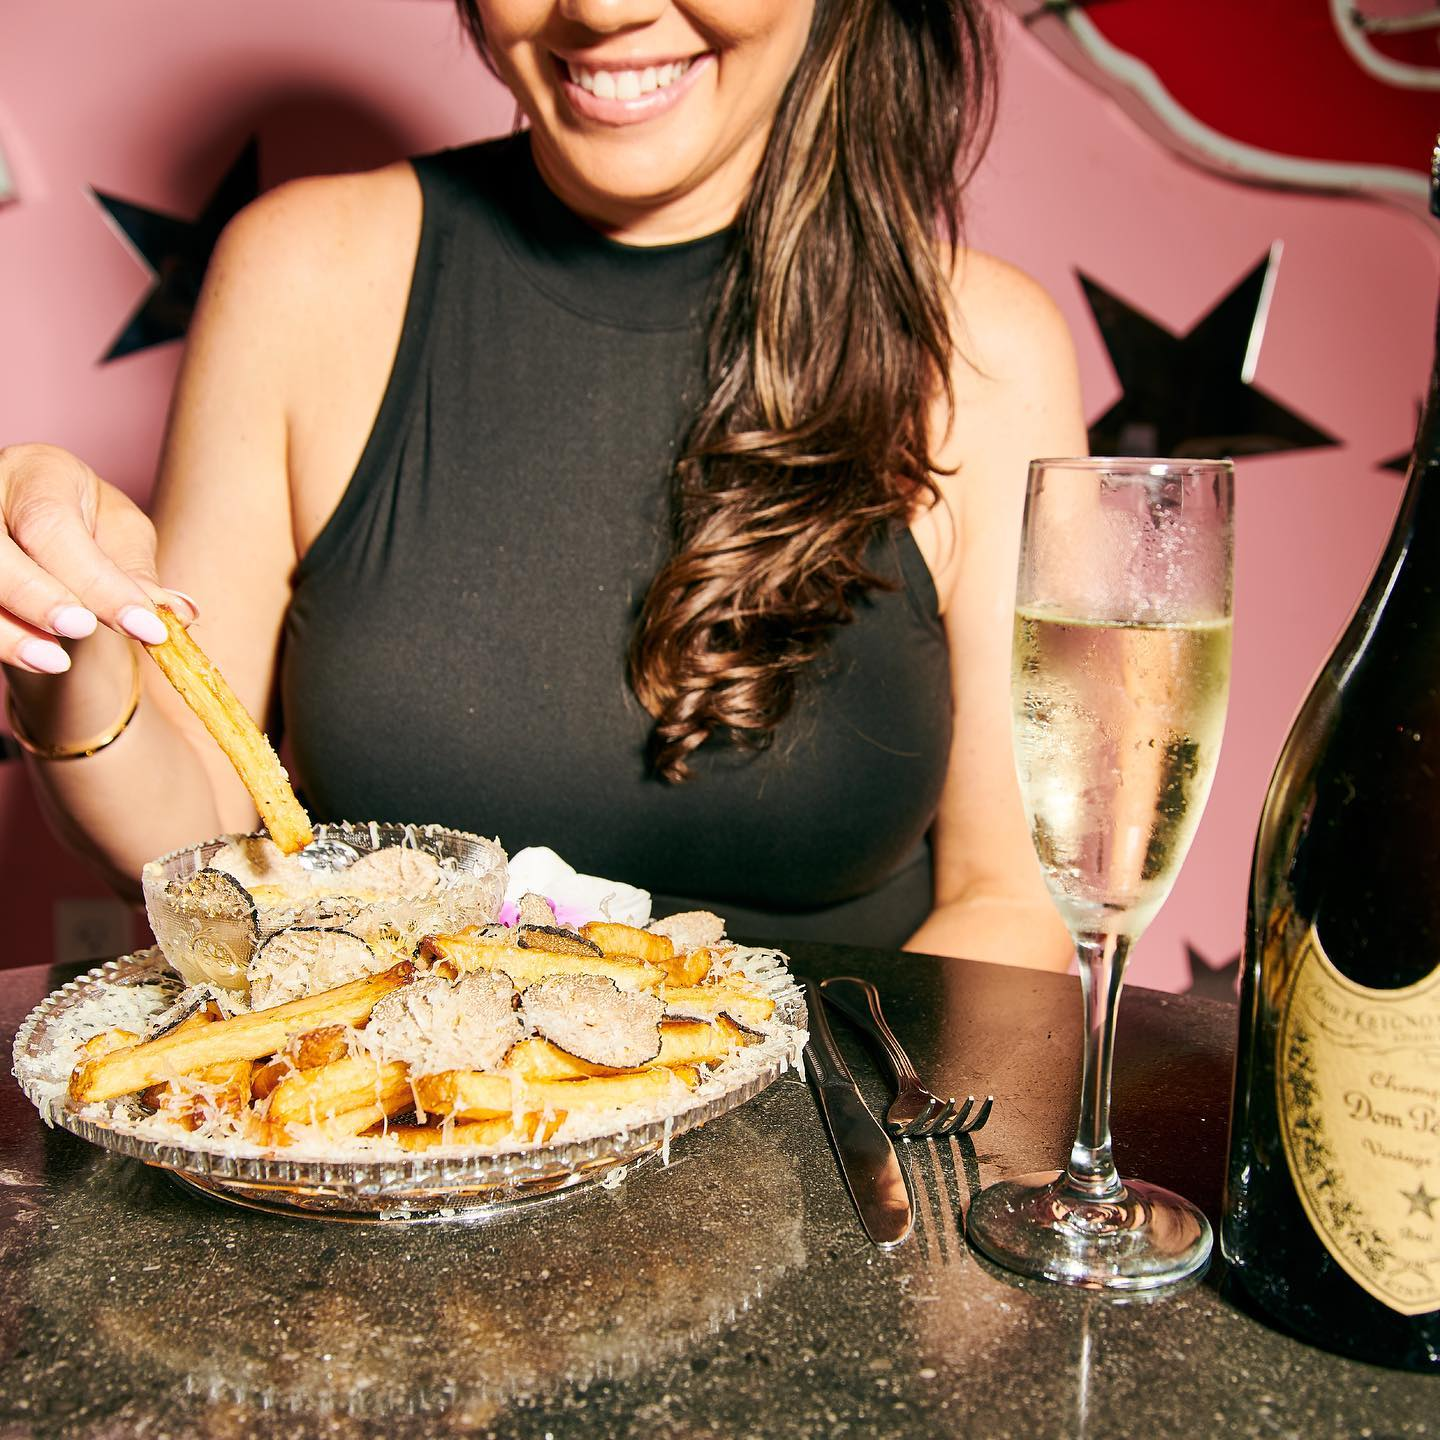 NYC restaurant sets Guinness World Record for most expensive French fries 17